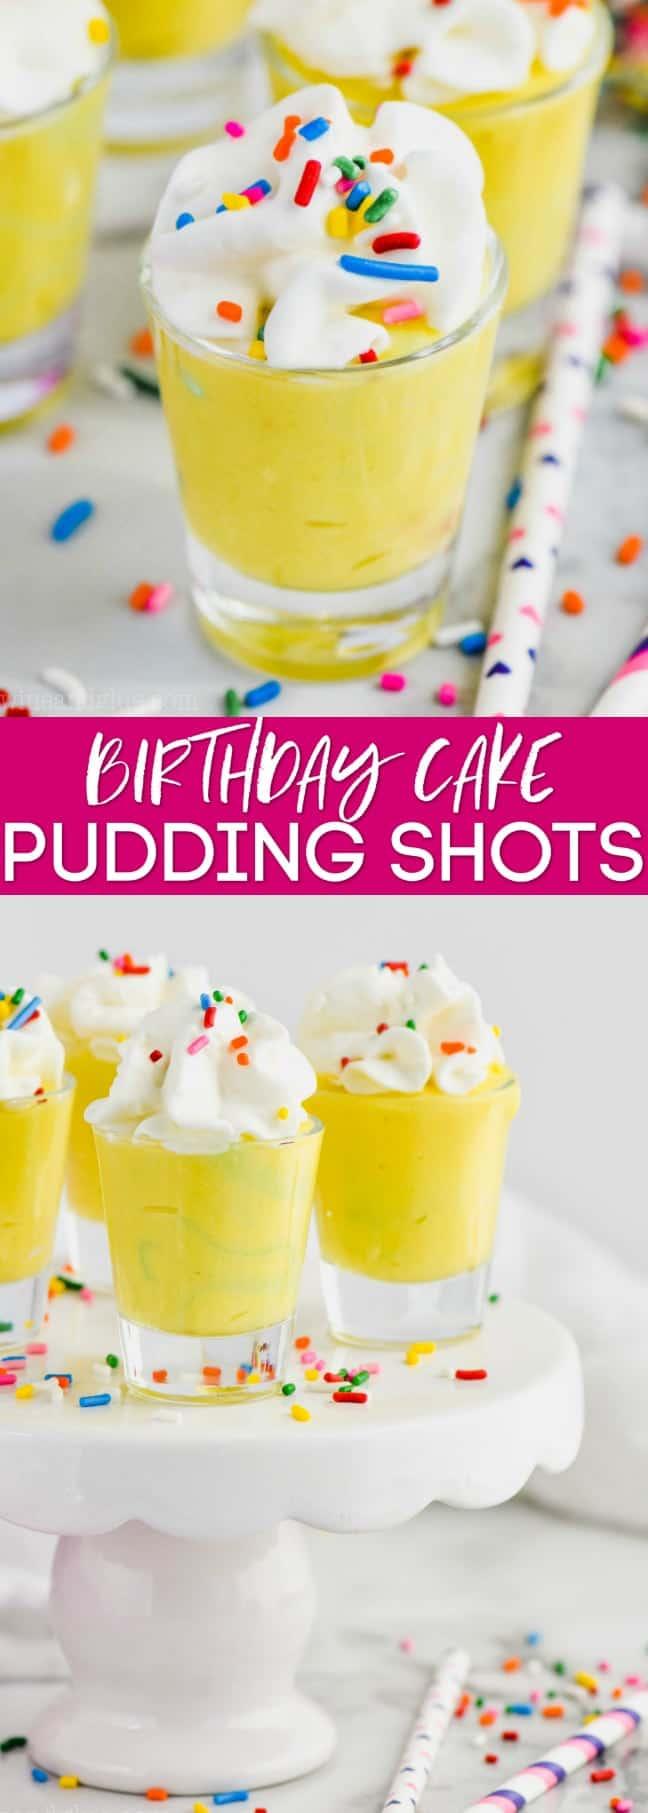 collage of photos of birthday cake pudding shots